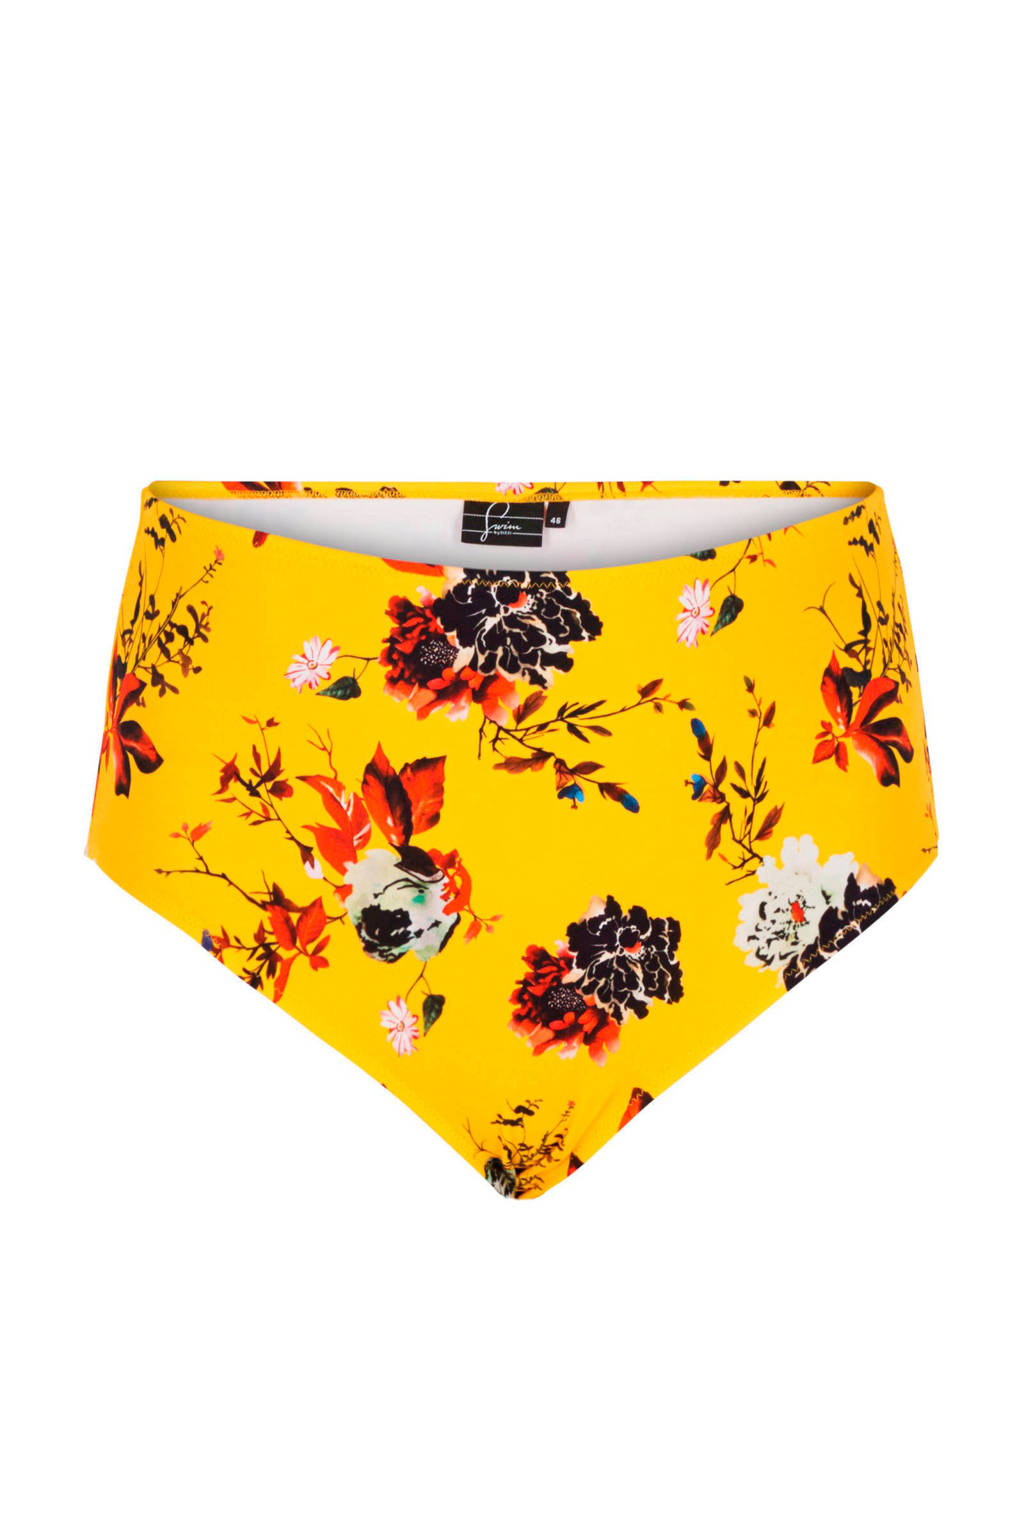 All Zizzicorrigerend Broekje Bikini Geel High Print In Een Waist Over AqYwqd5r